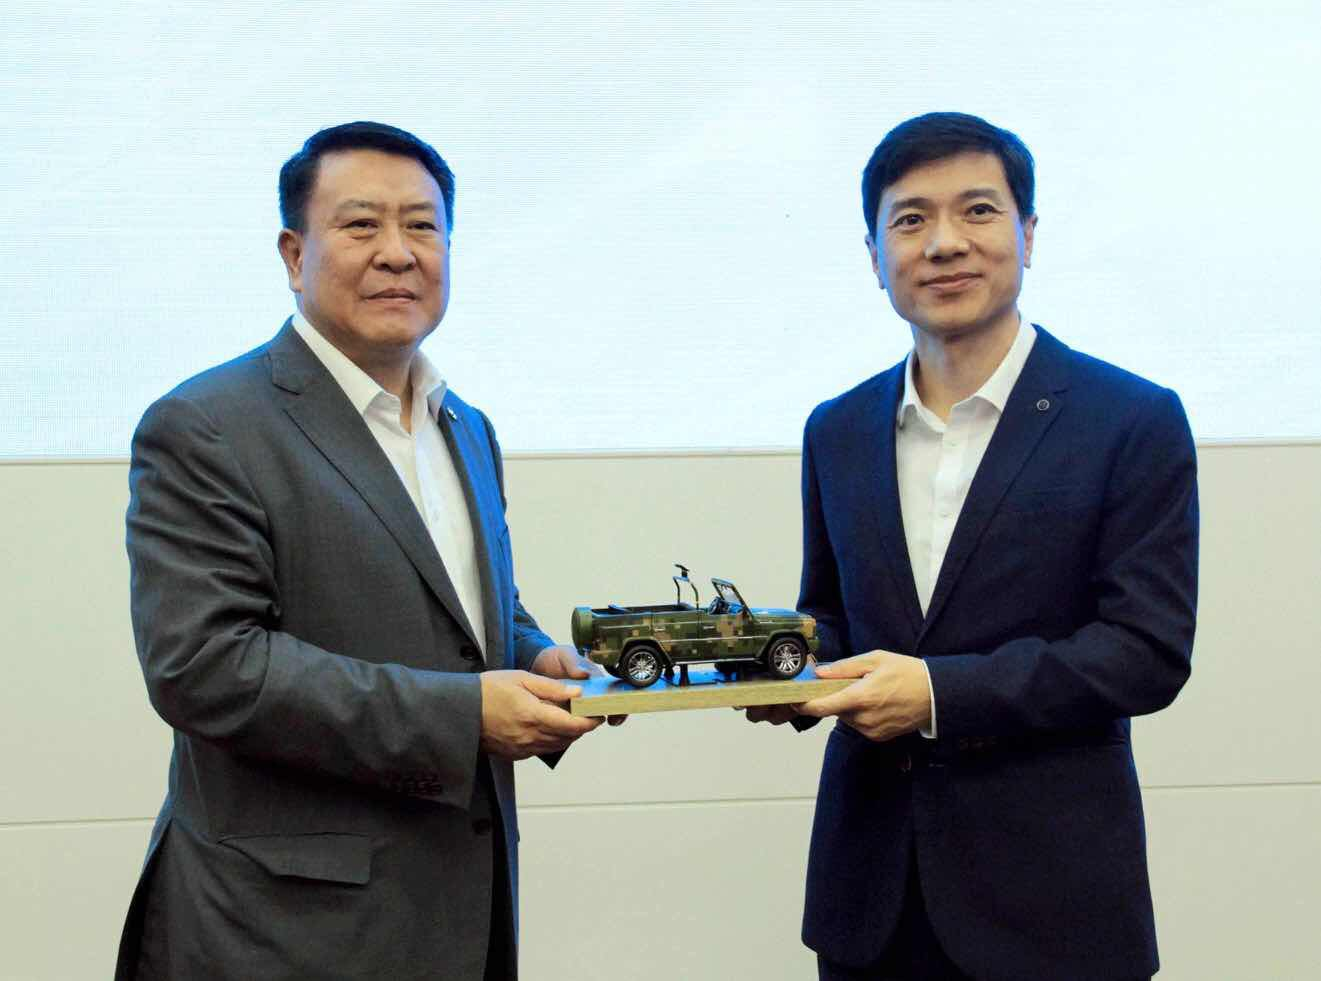 Baidu plans to mass produce Level 4 self-driving cars with BAIC by 2021 https://t.co/lw2BvLXt2C by @etherington https://t.co/mcTrn64Y8U